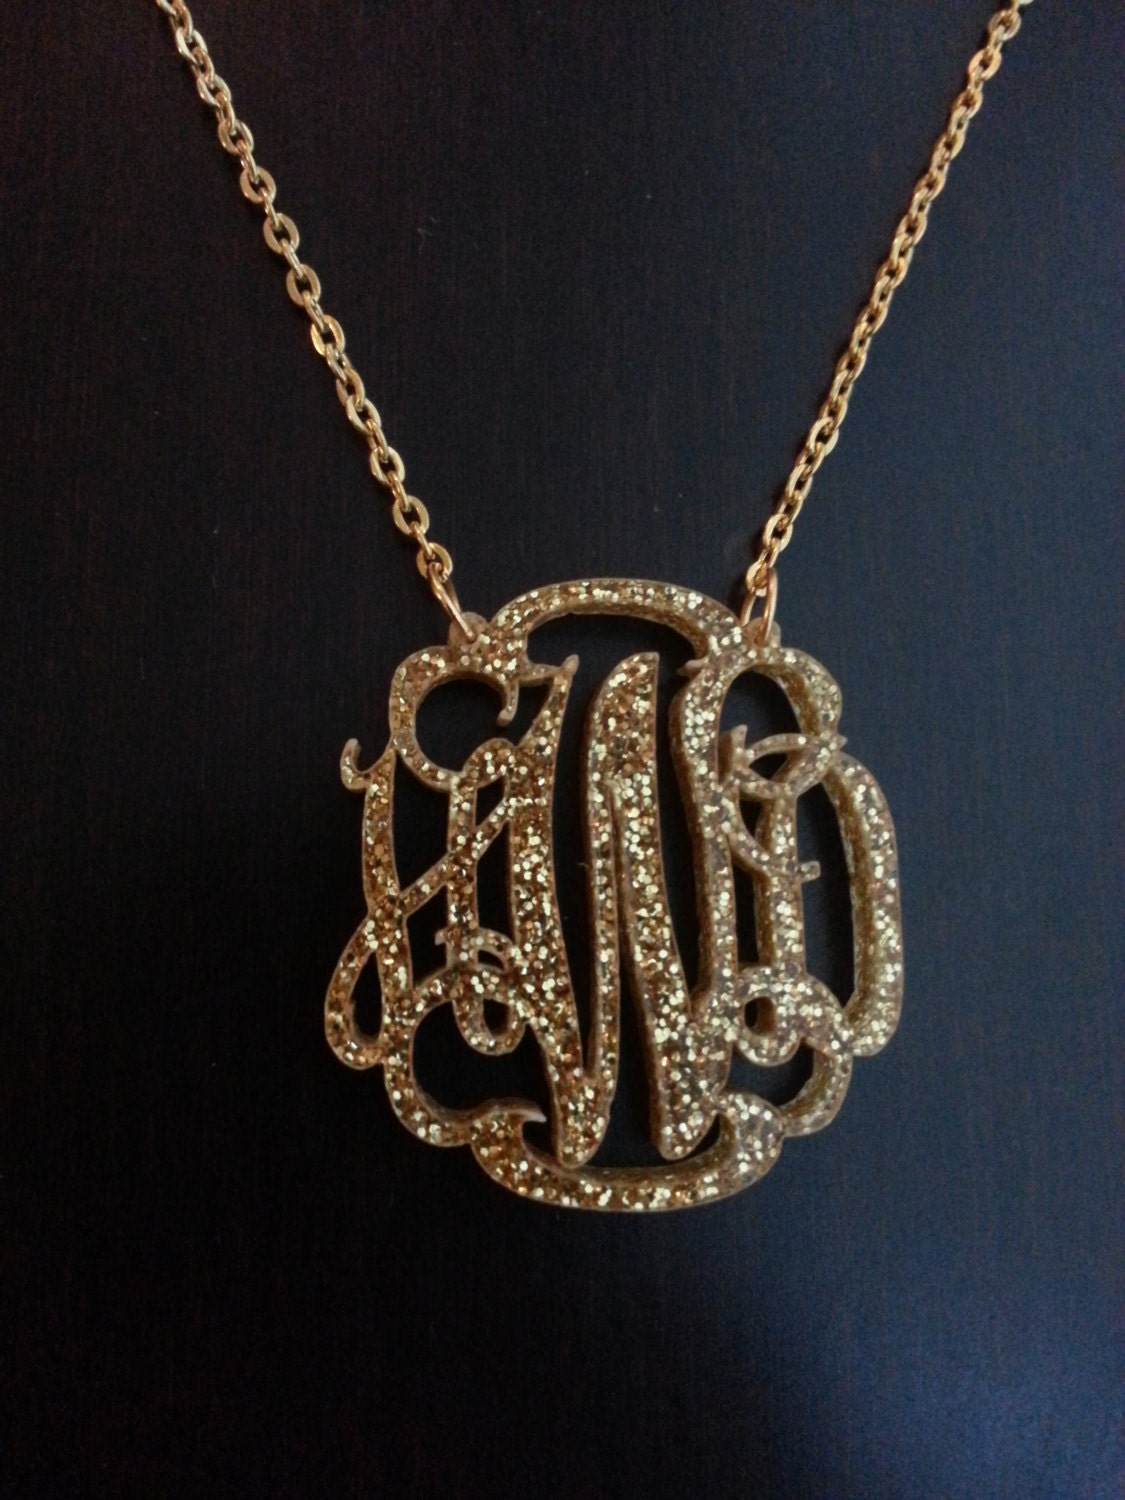 Glitter acrylic monogram necklace with circle or script font